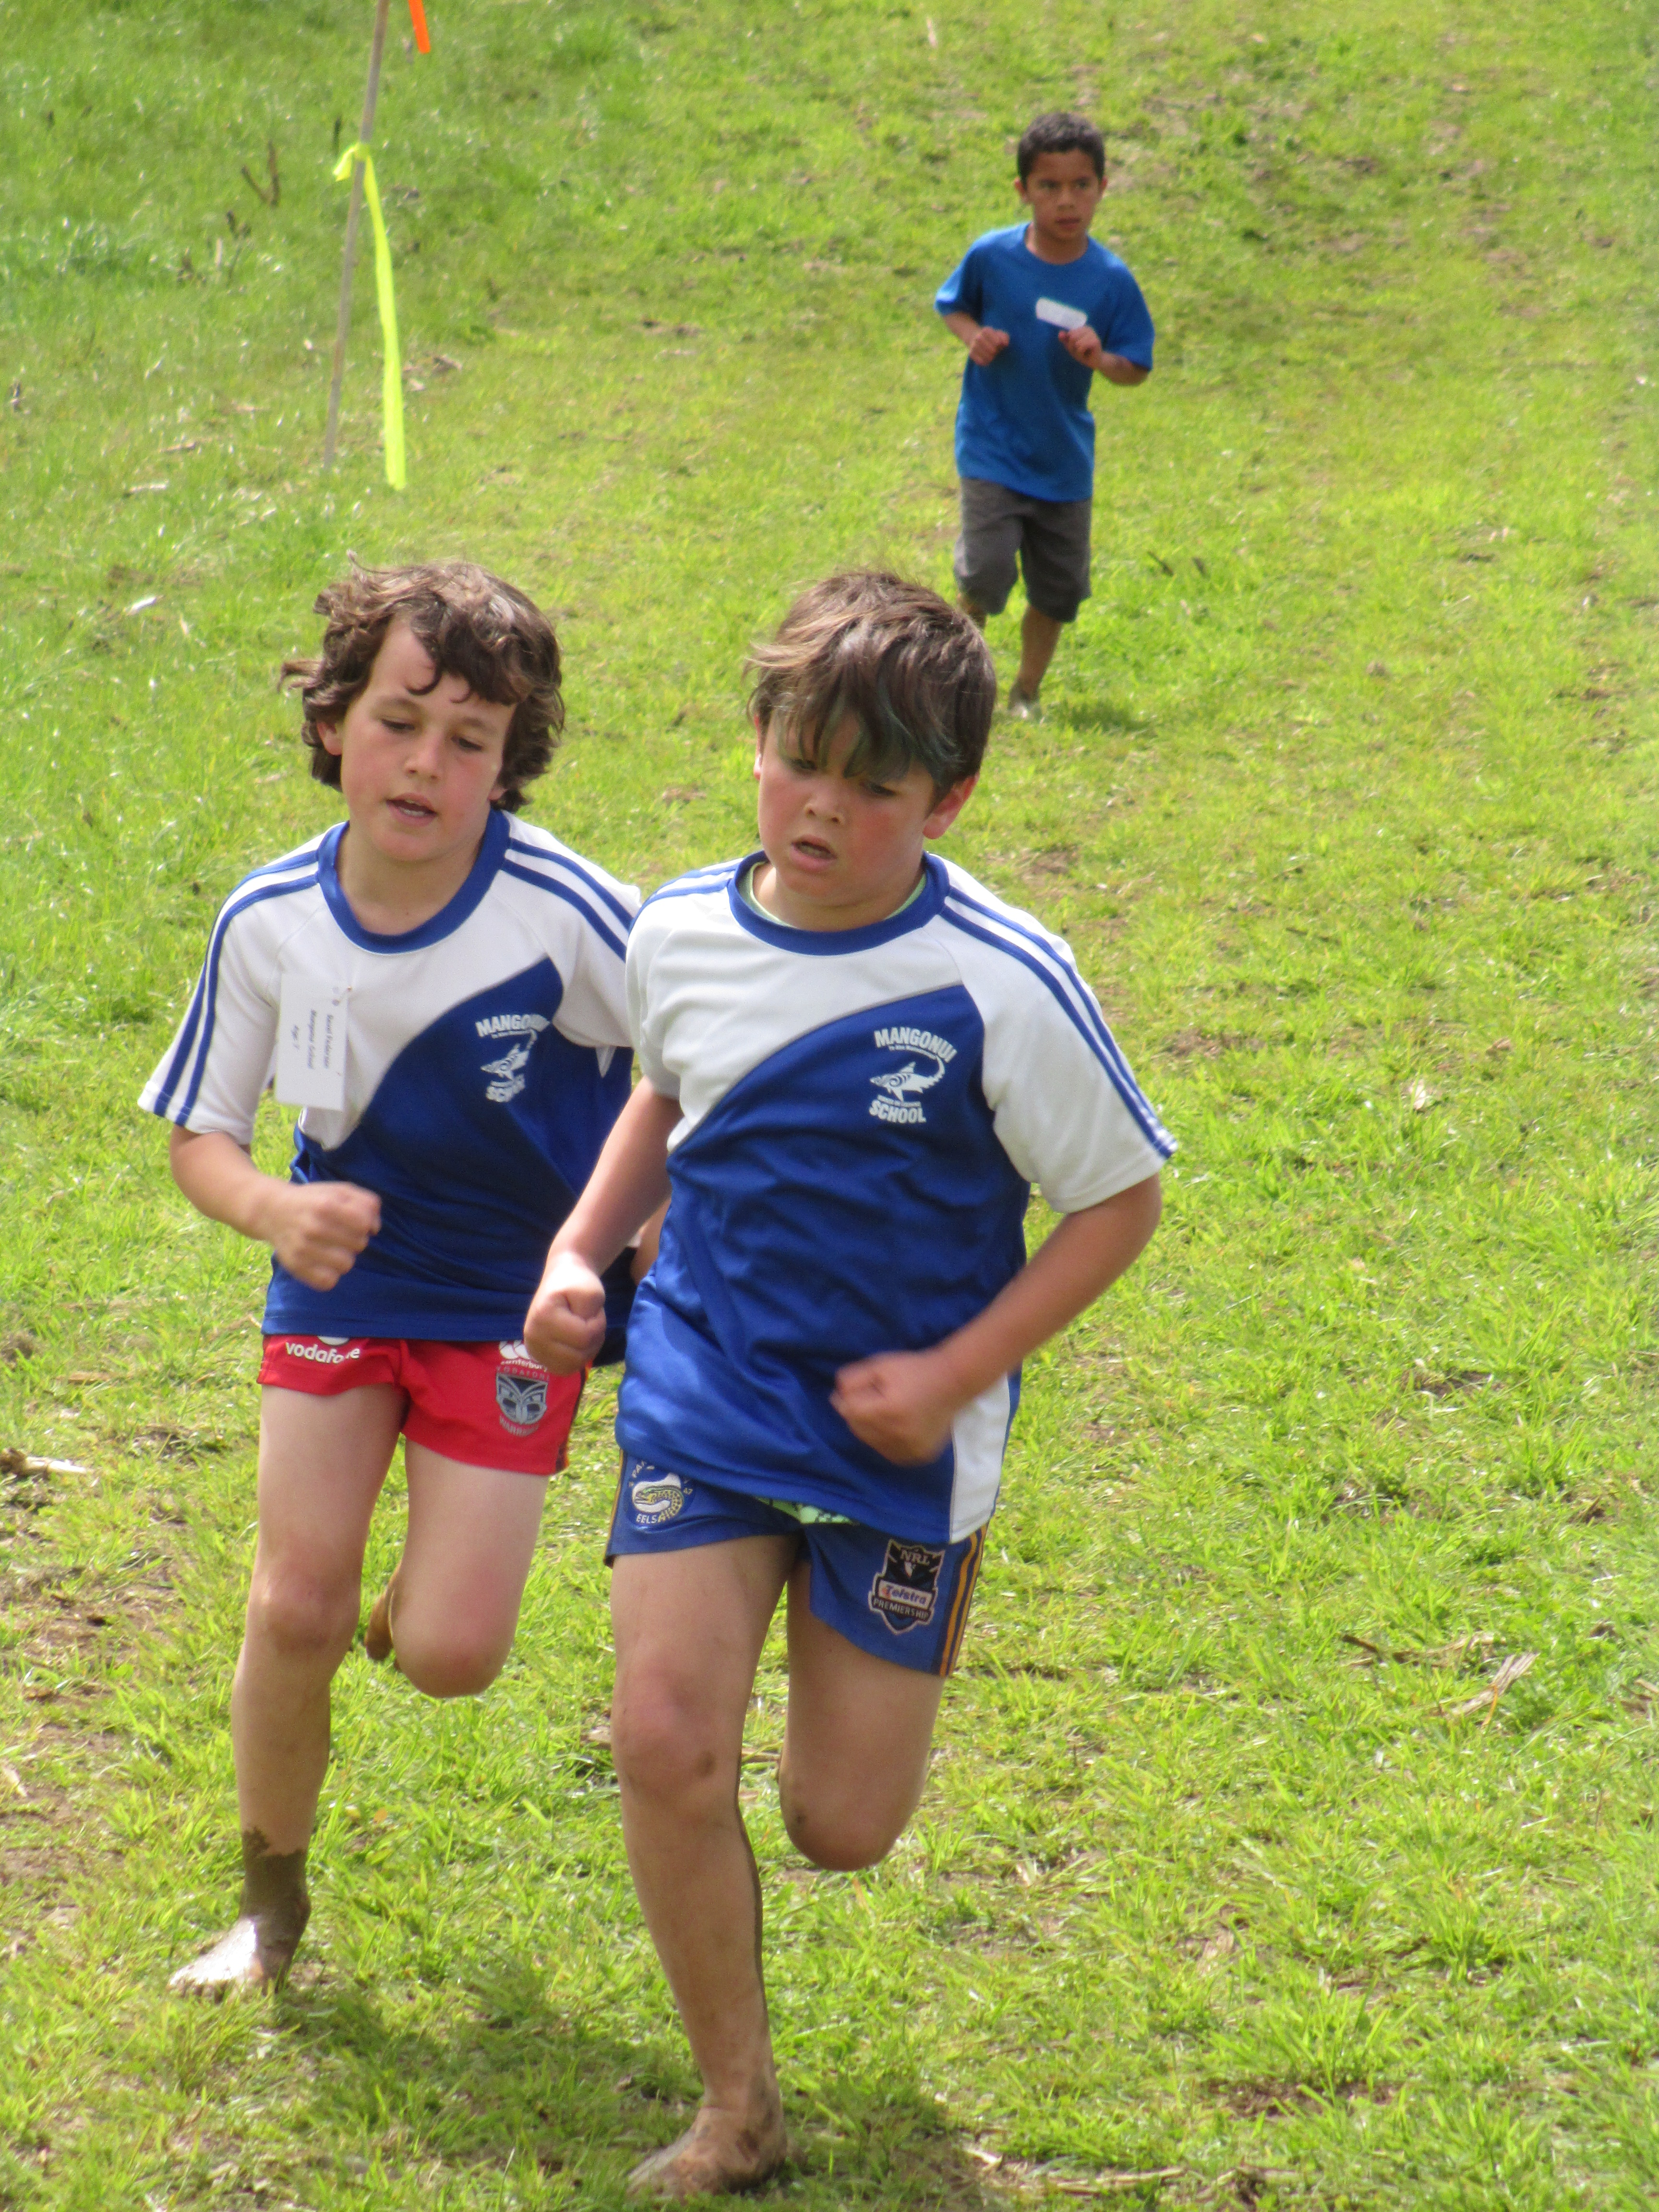 old school cross country meet results